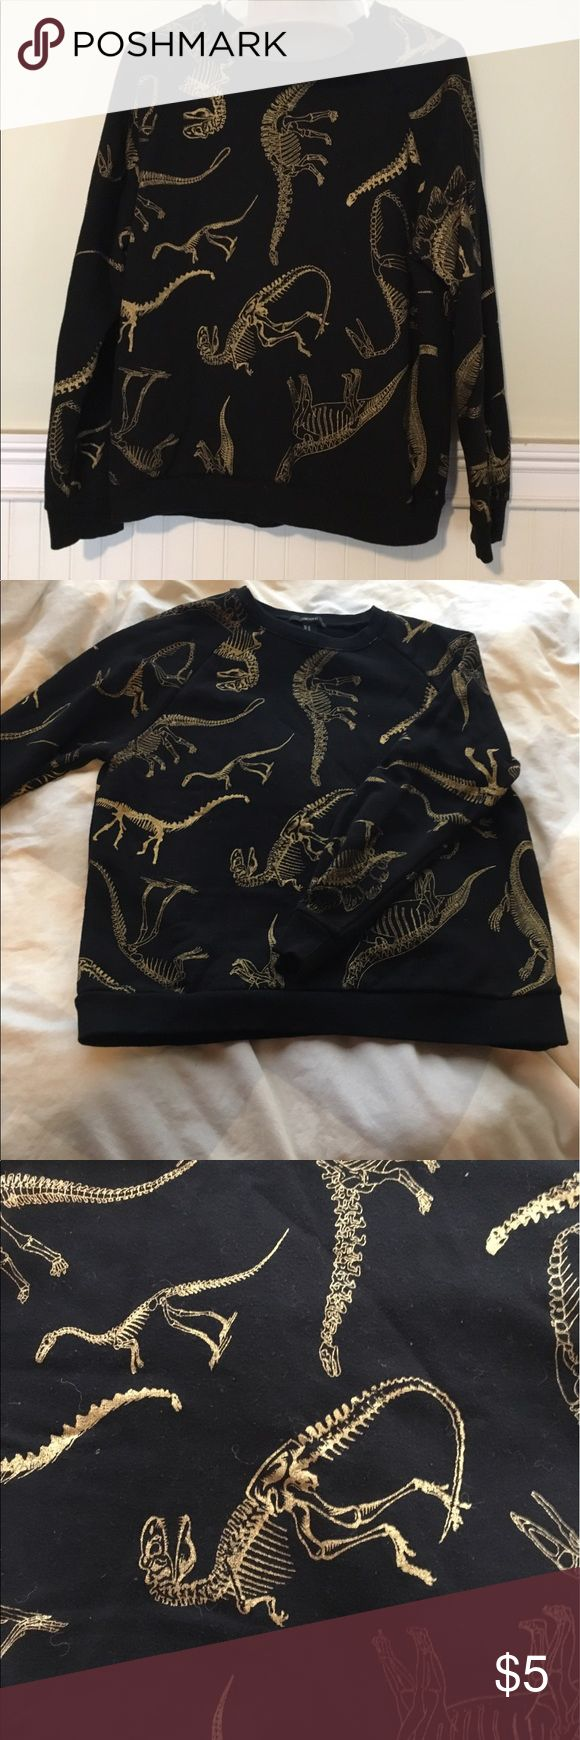 Forever 21 Black & Gold Dinosaur Sweatshirt This black and gold dinosaur sweatshirt from Forever 21 is so fun! It has been worn a few times, but is in great condition with no stains, fraying, etc. It is long sleeved, can be washed in the washer machine, and will be great for those fun late summer, fall nights. Ask any questions you may have! Forever 21 Tops Sweatshirts & Hoodies